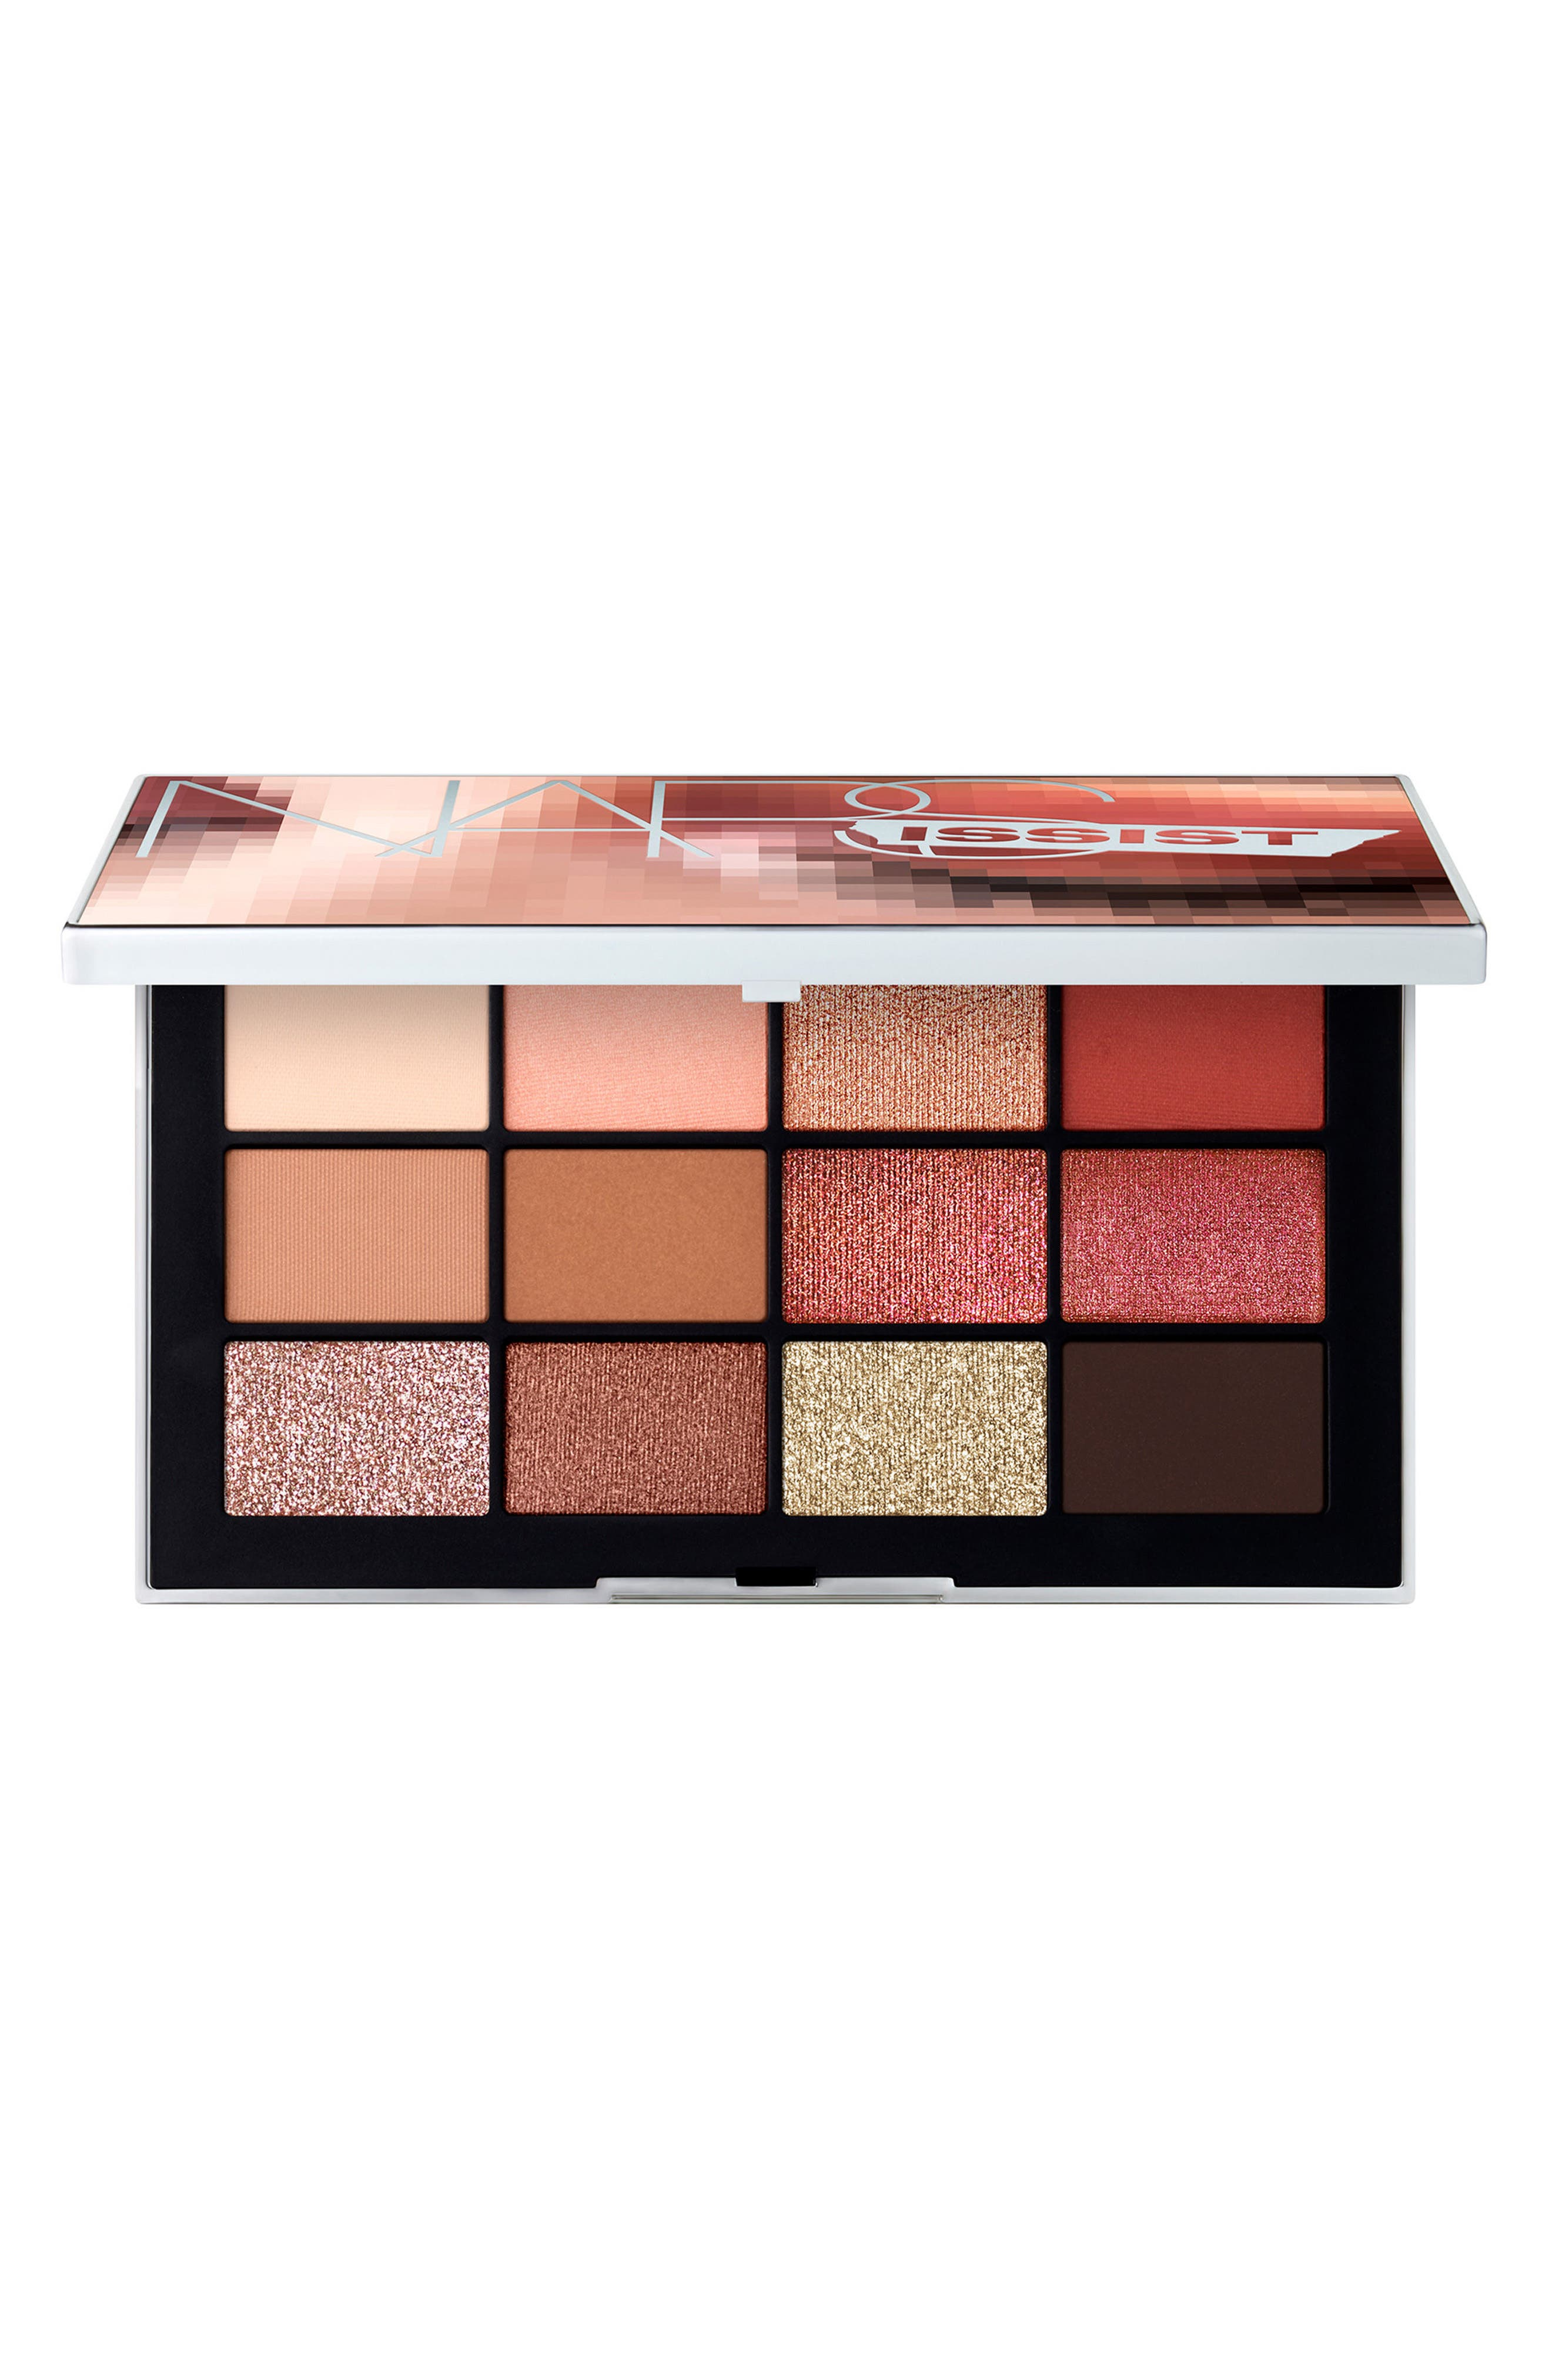 NARS NARSissist Most Wanted Eyeshadow Palette ($199 Value)